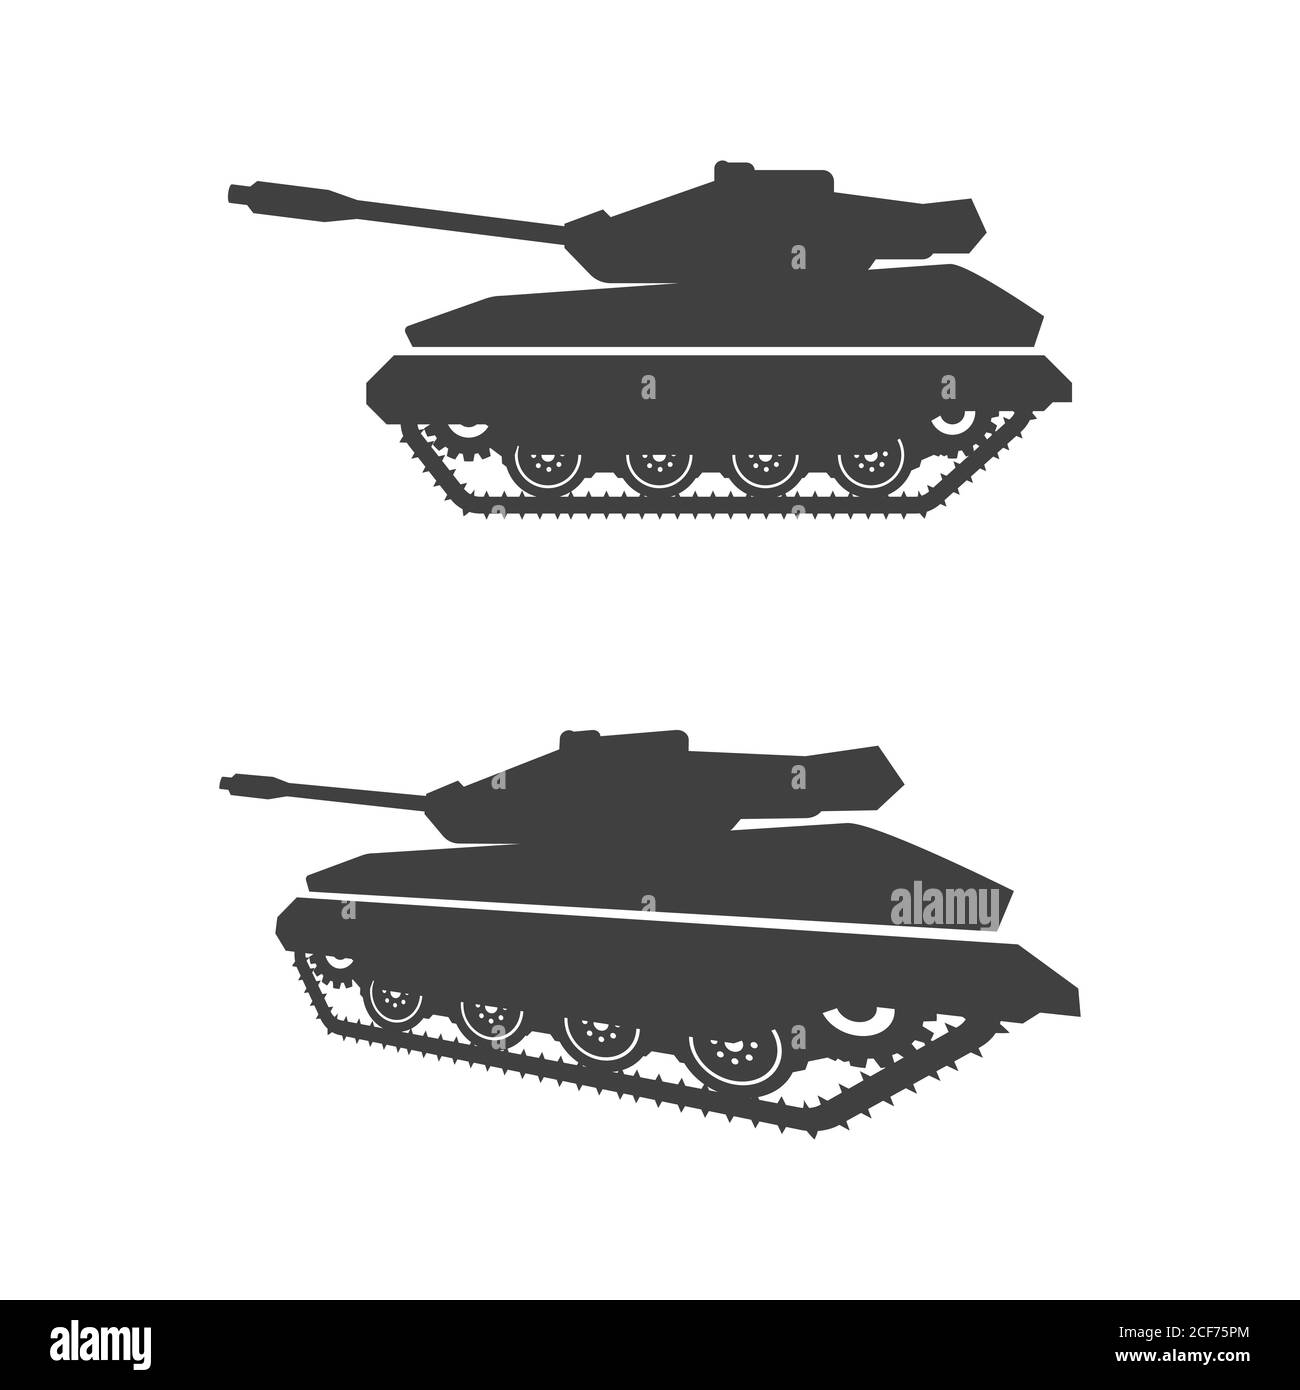 military tank icon vector illustration design template stock vector image art alamy https www alamy com military tank icon vector illustration design template image370795788 html